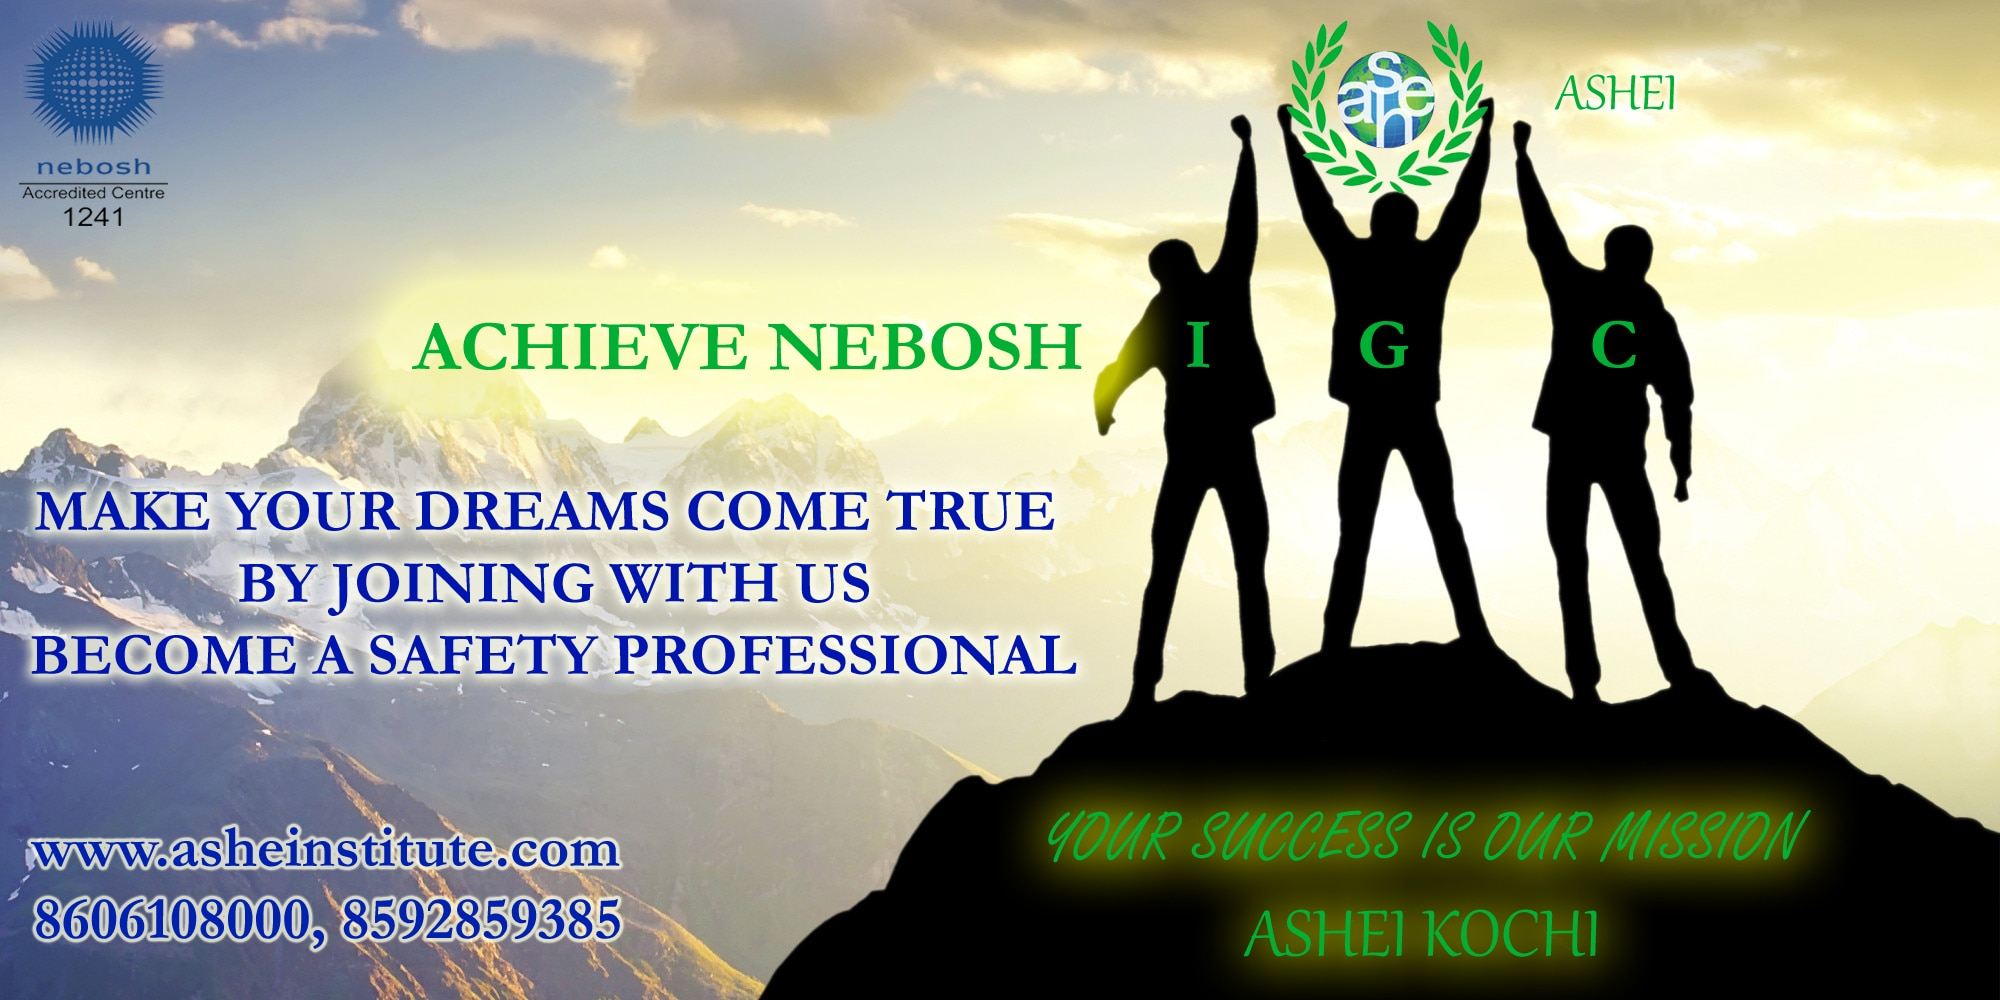 Safety Courses in Kerala! NEBOSH IGC, HSW, IOSH, IADC, OHSAS, CIEH, Medic First Aid, BSC IDIP courses............  https://plus.google.com/u/1/112243300282520816687/posts/Zctt1zpVGwS